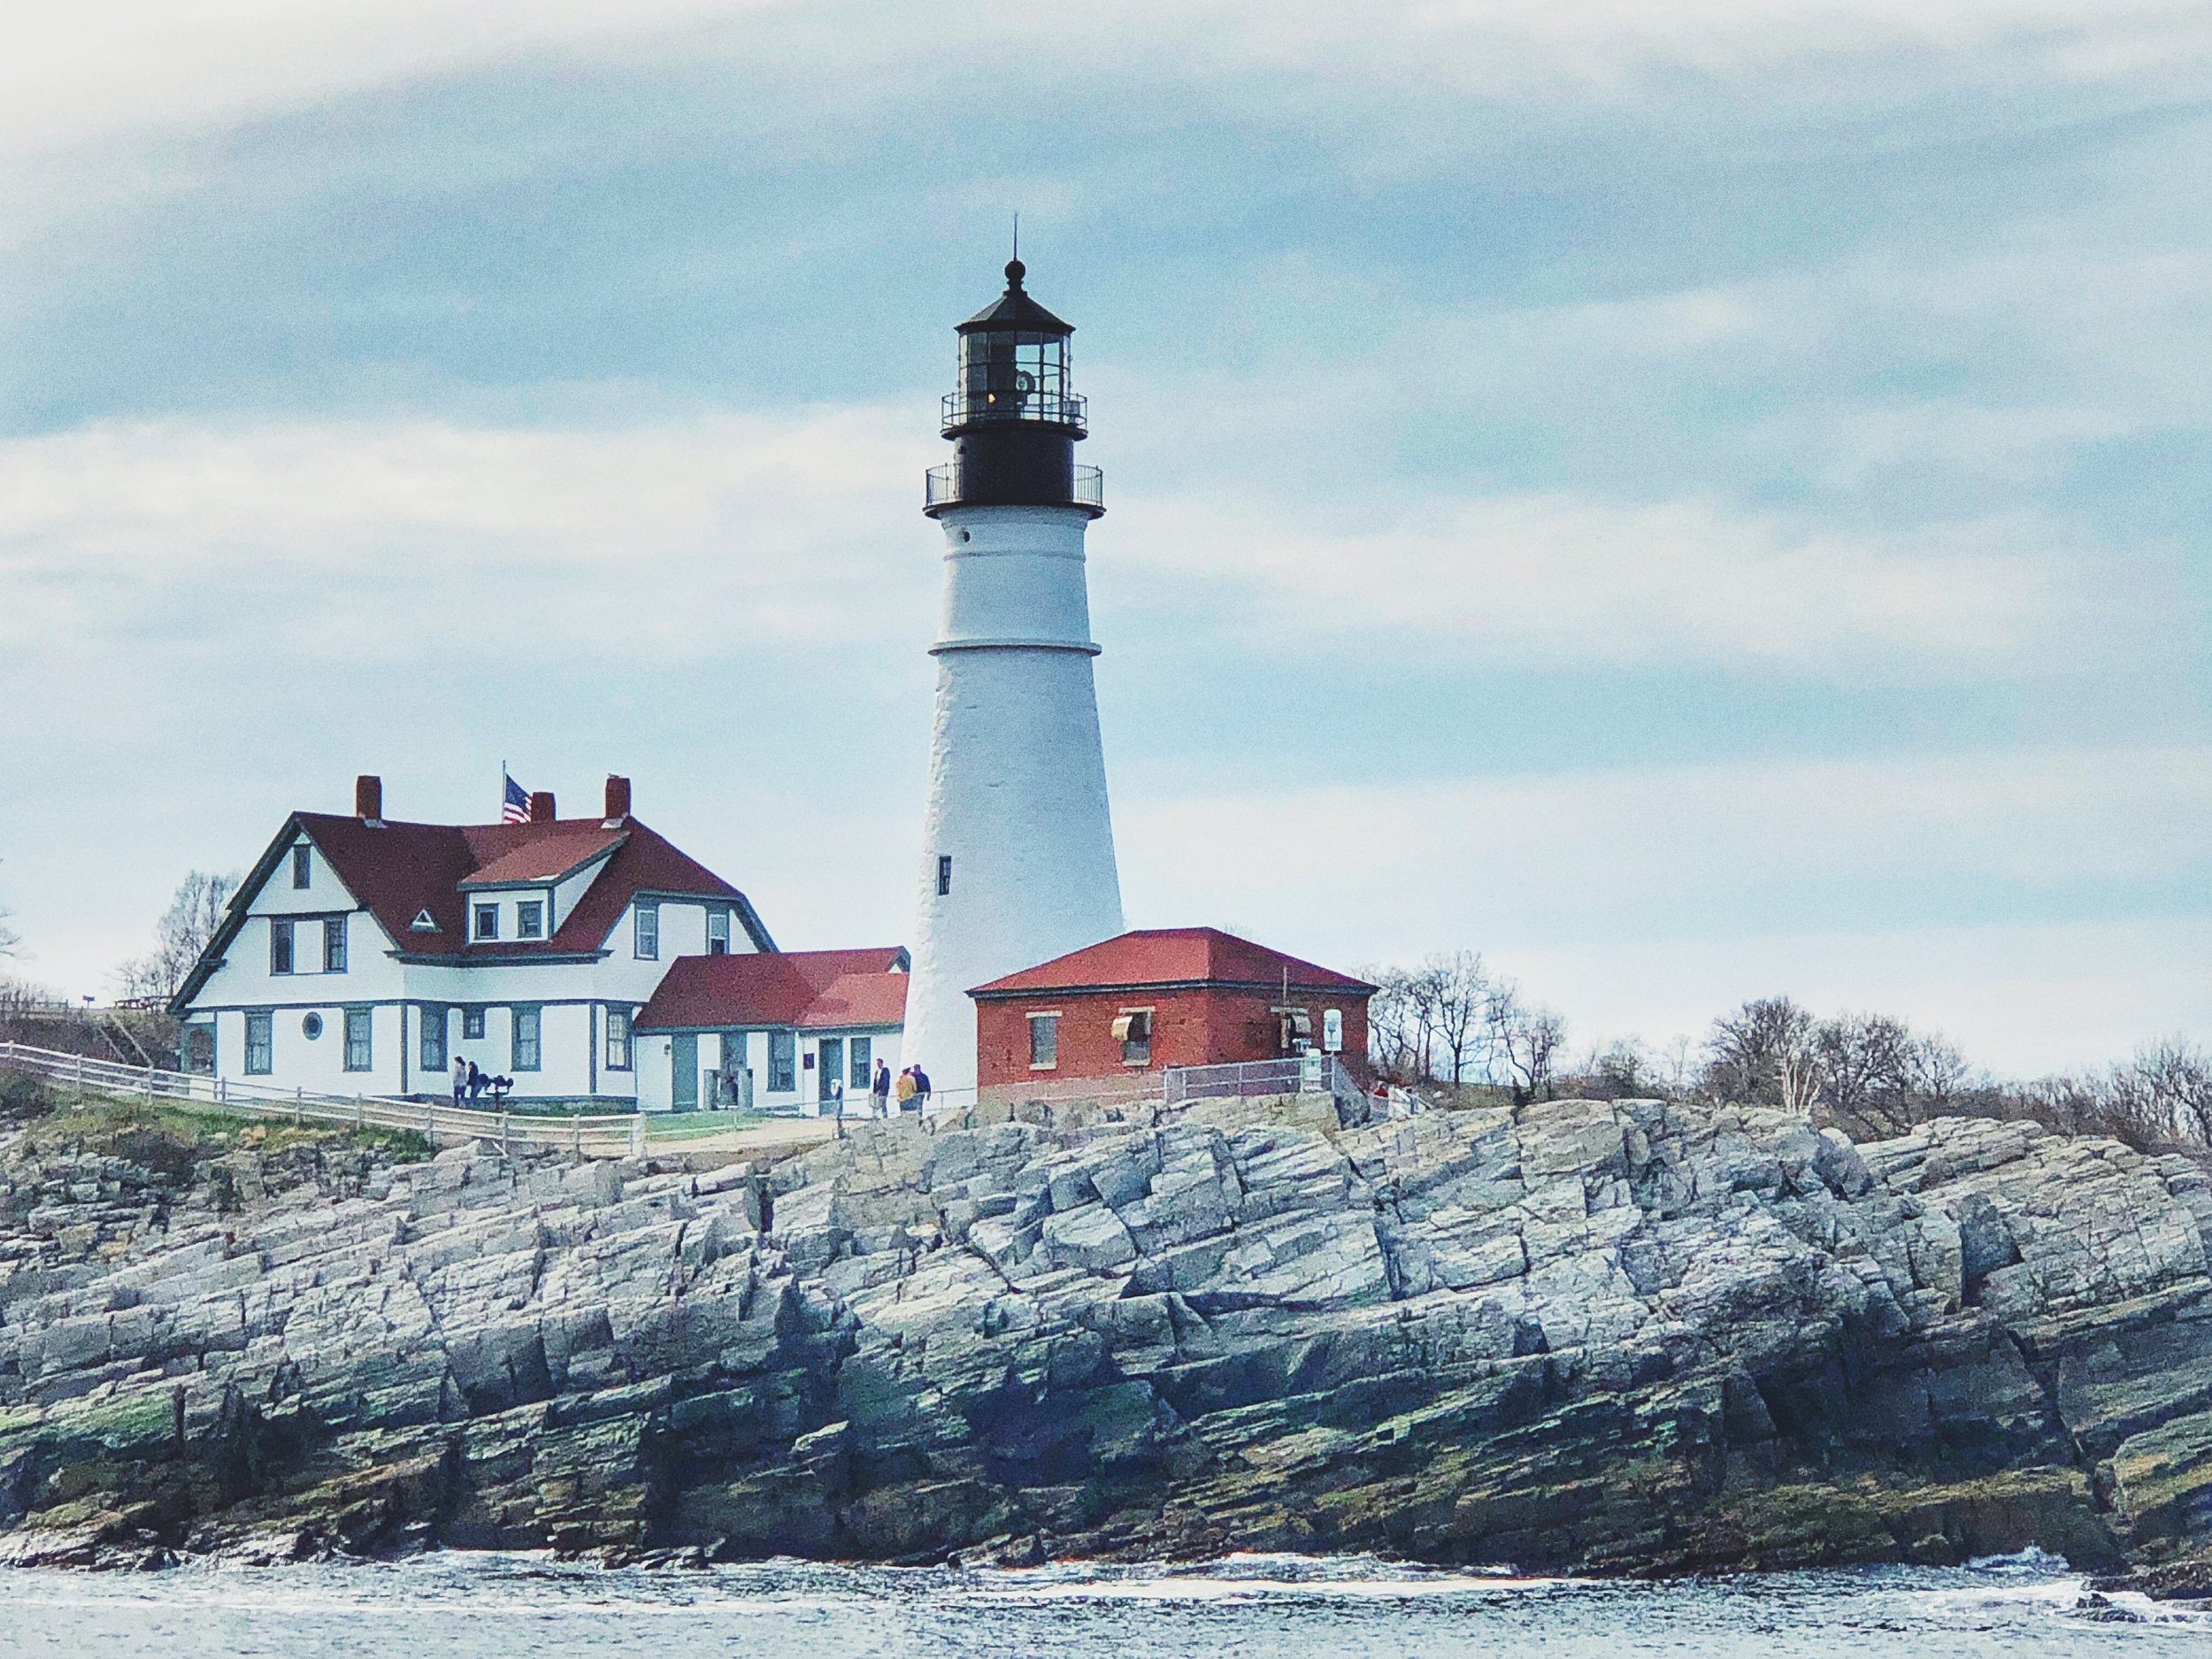 See Maine by train in 4 nights, Portland Head Light